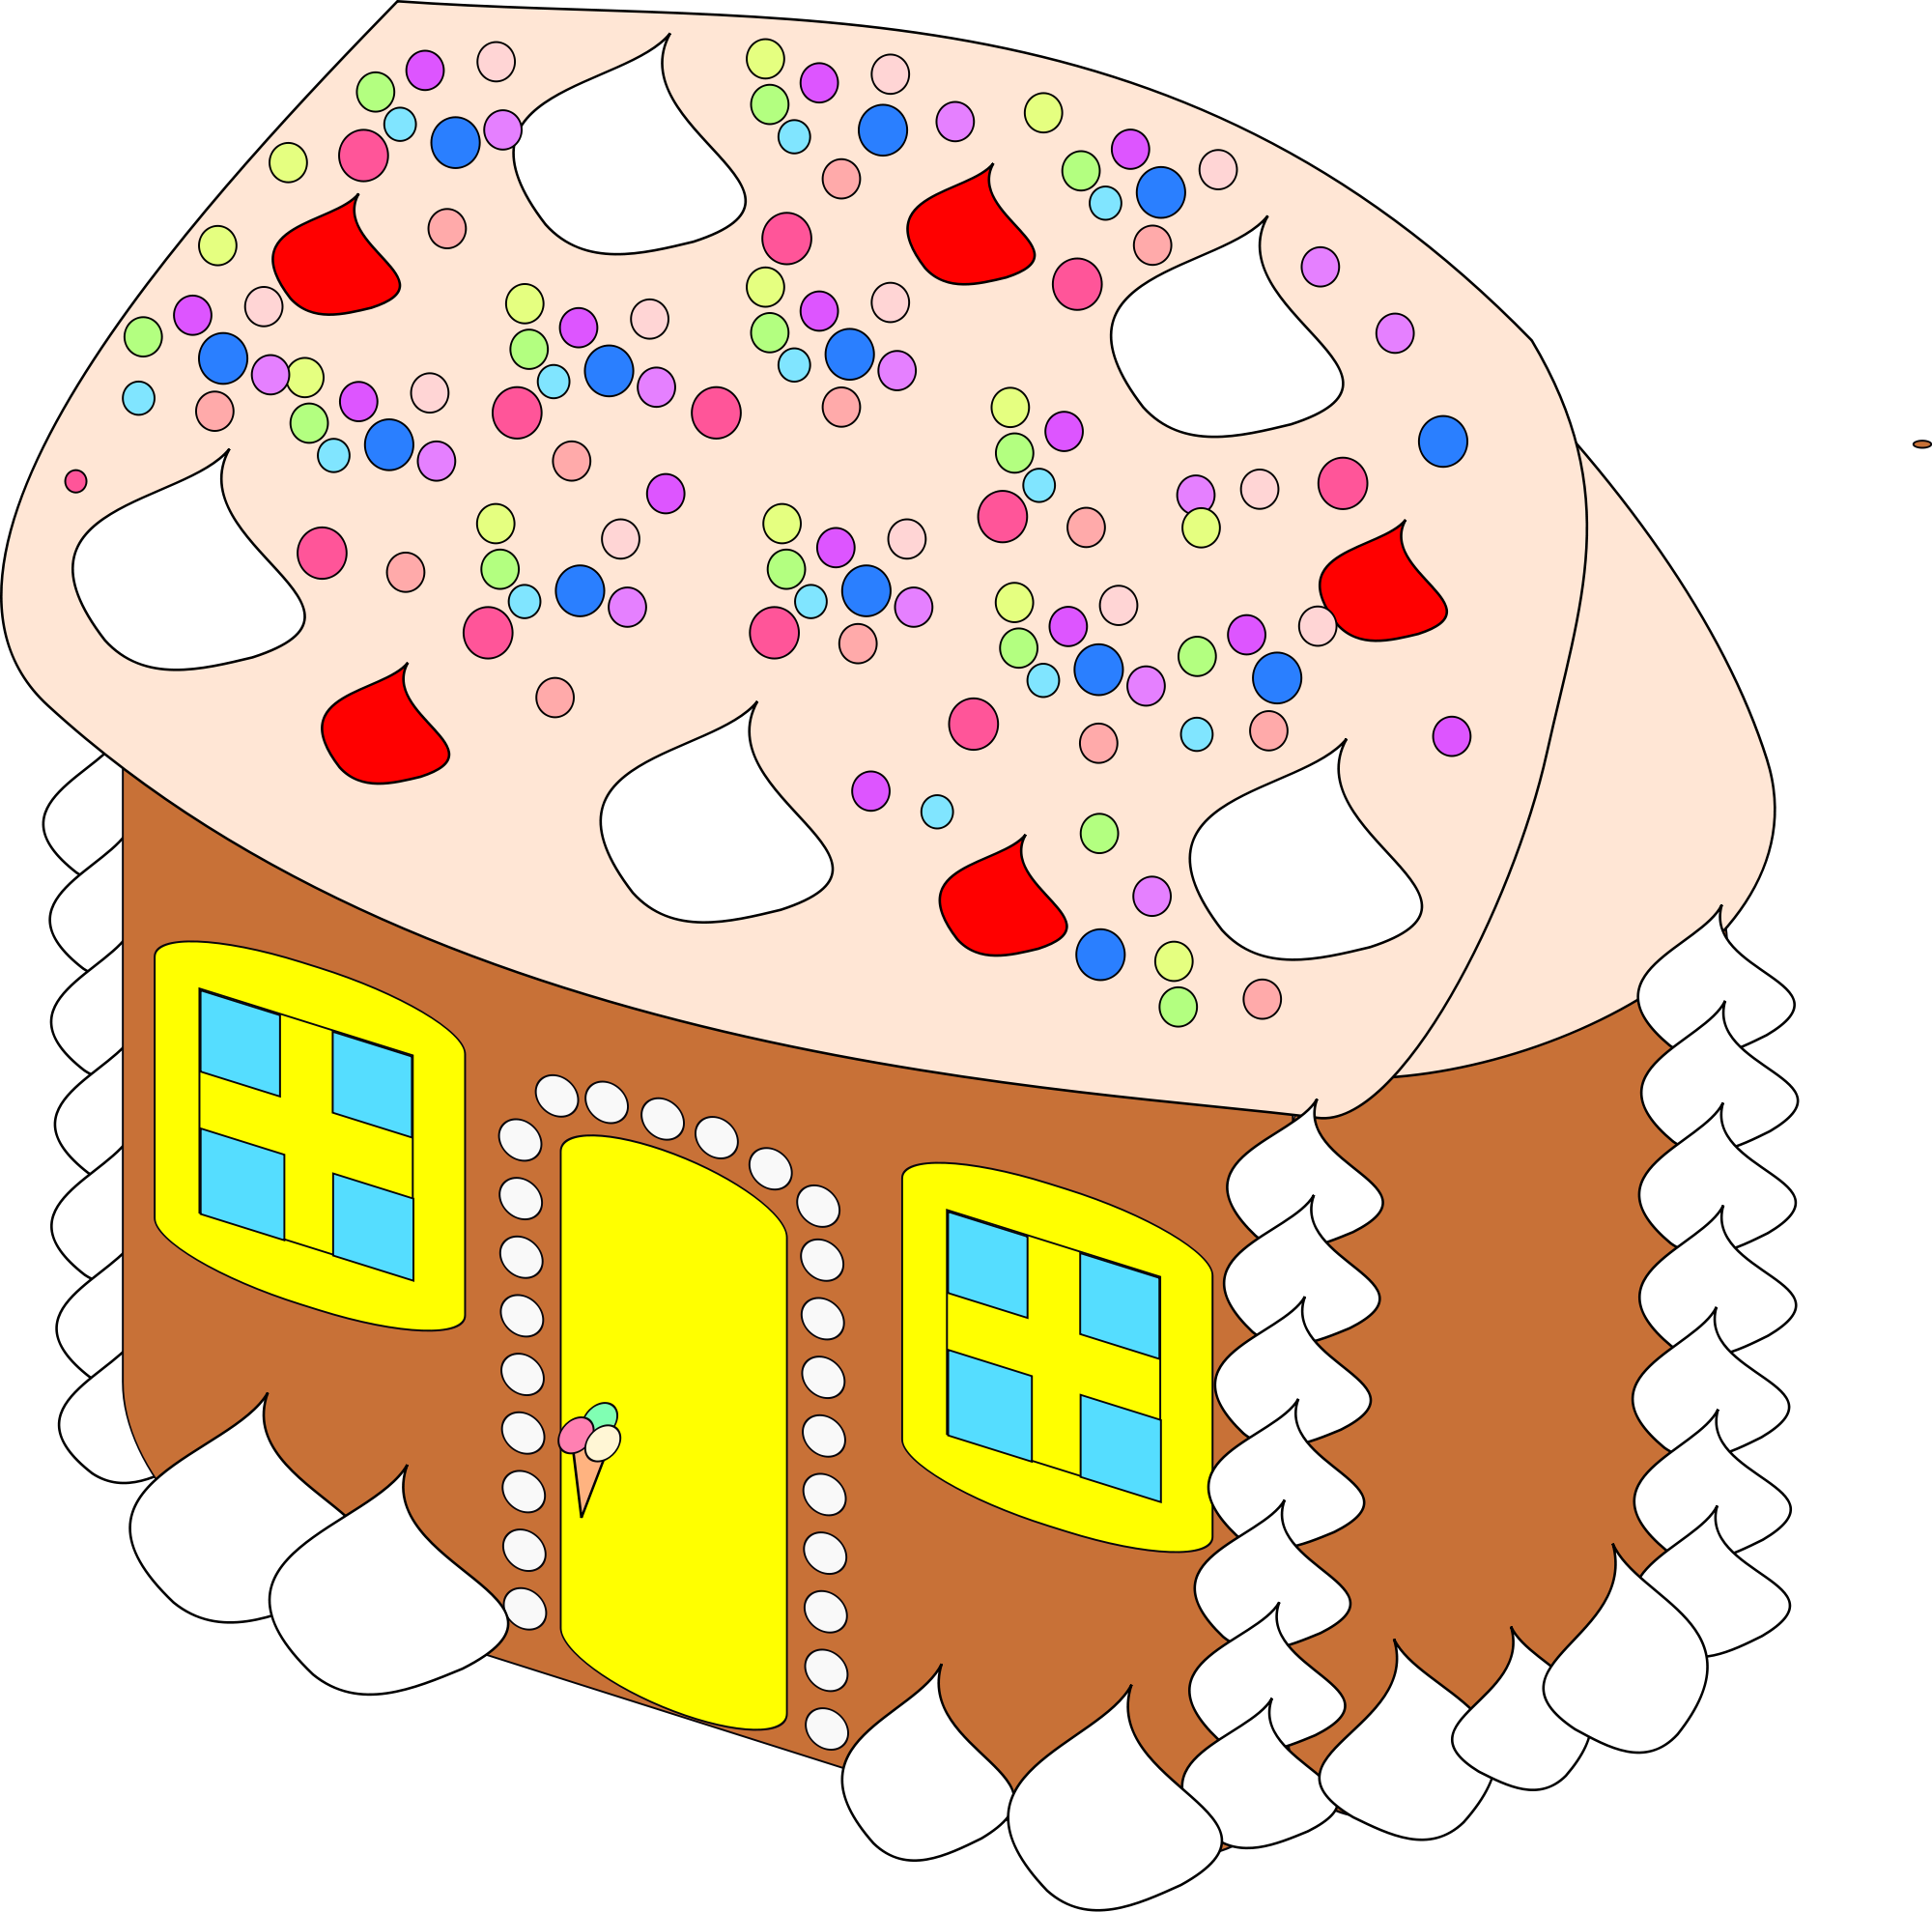 Wood house with chimney clipart graphic transparent library File:Sweet House.svg - Wikimedia Commons graphic transparent library